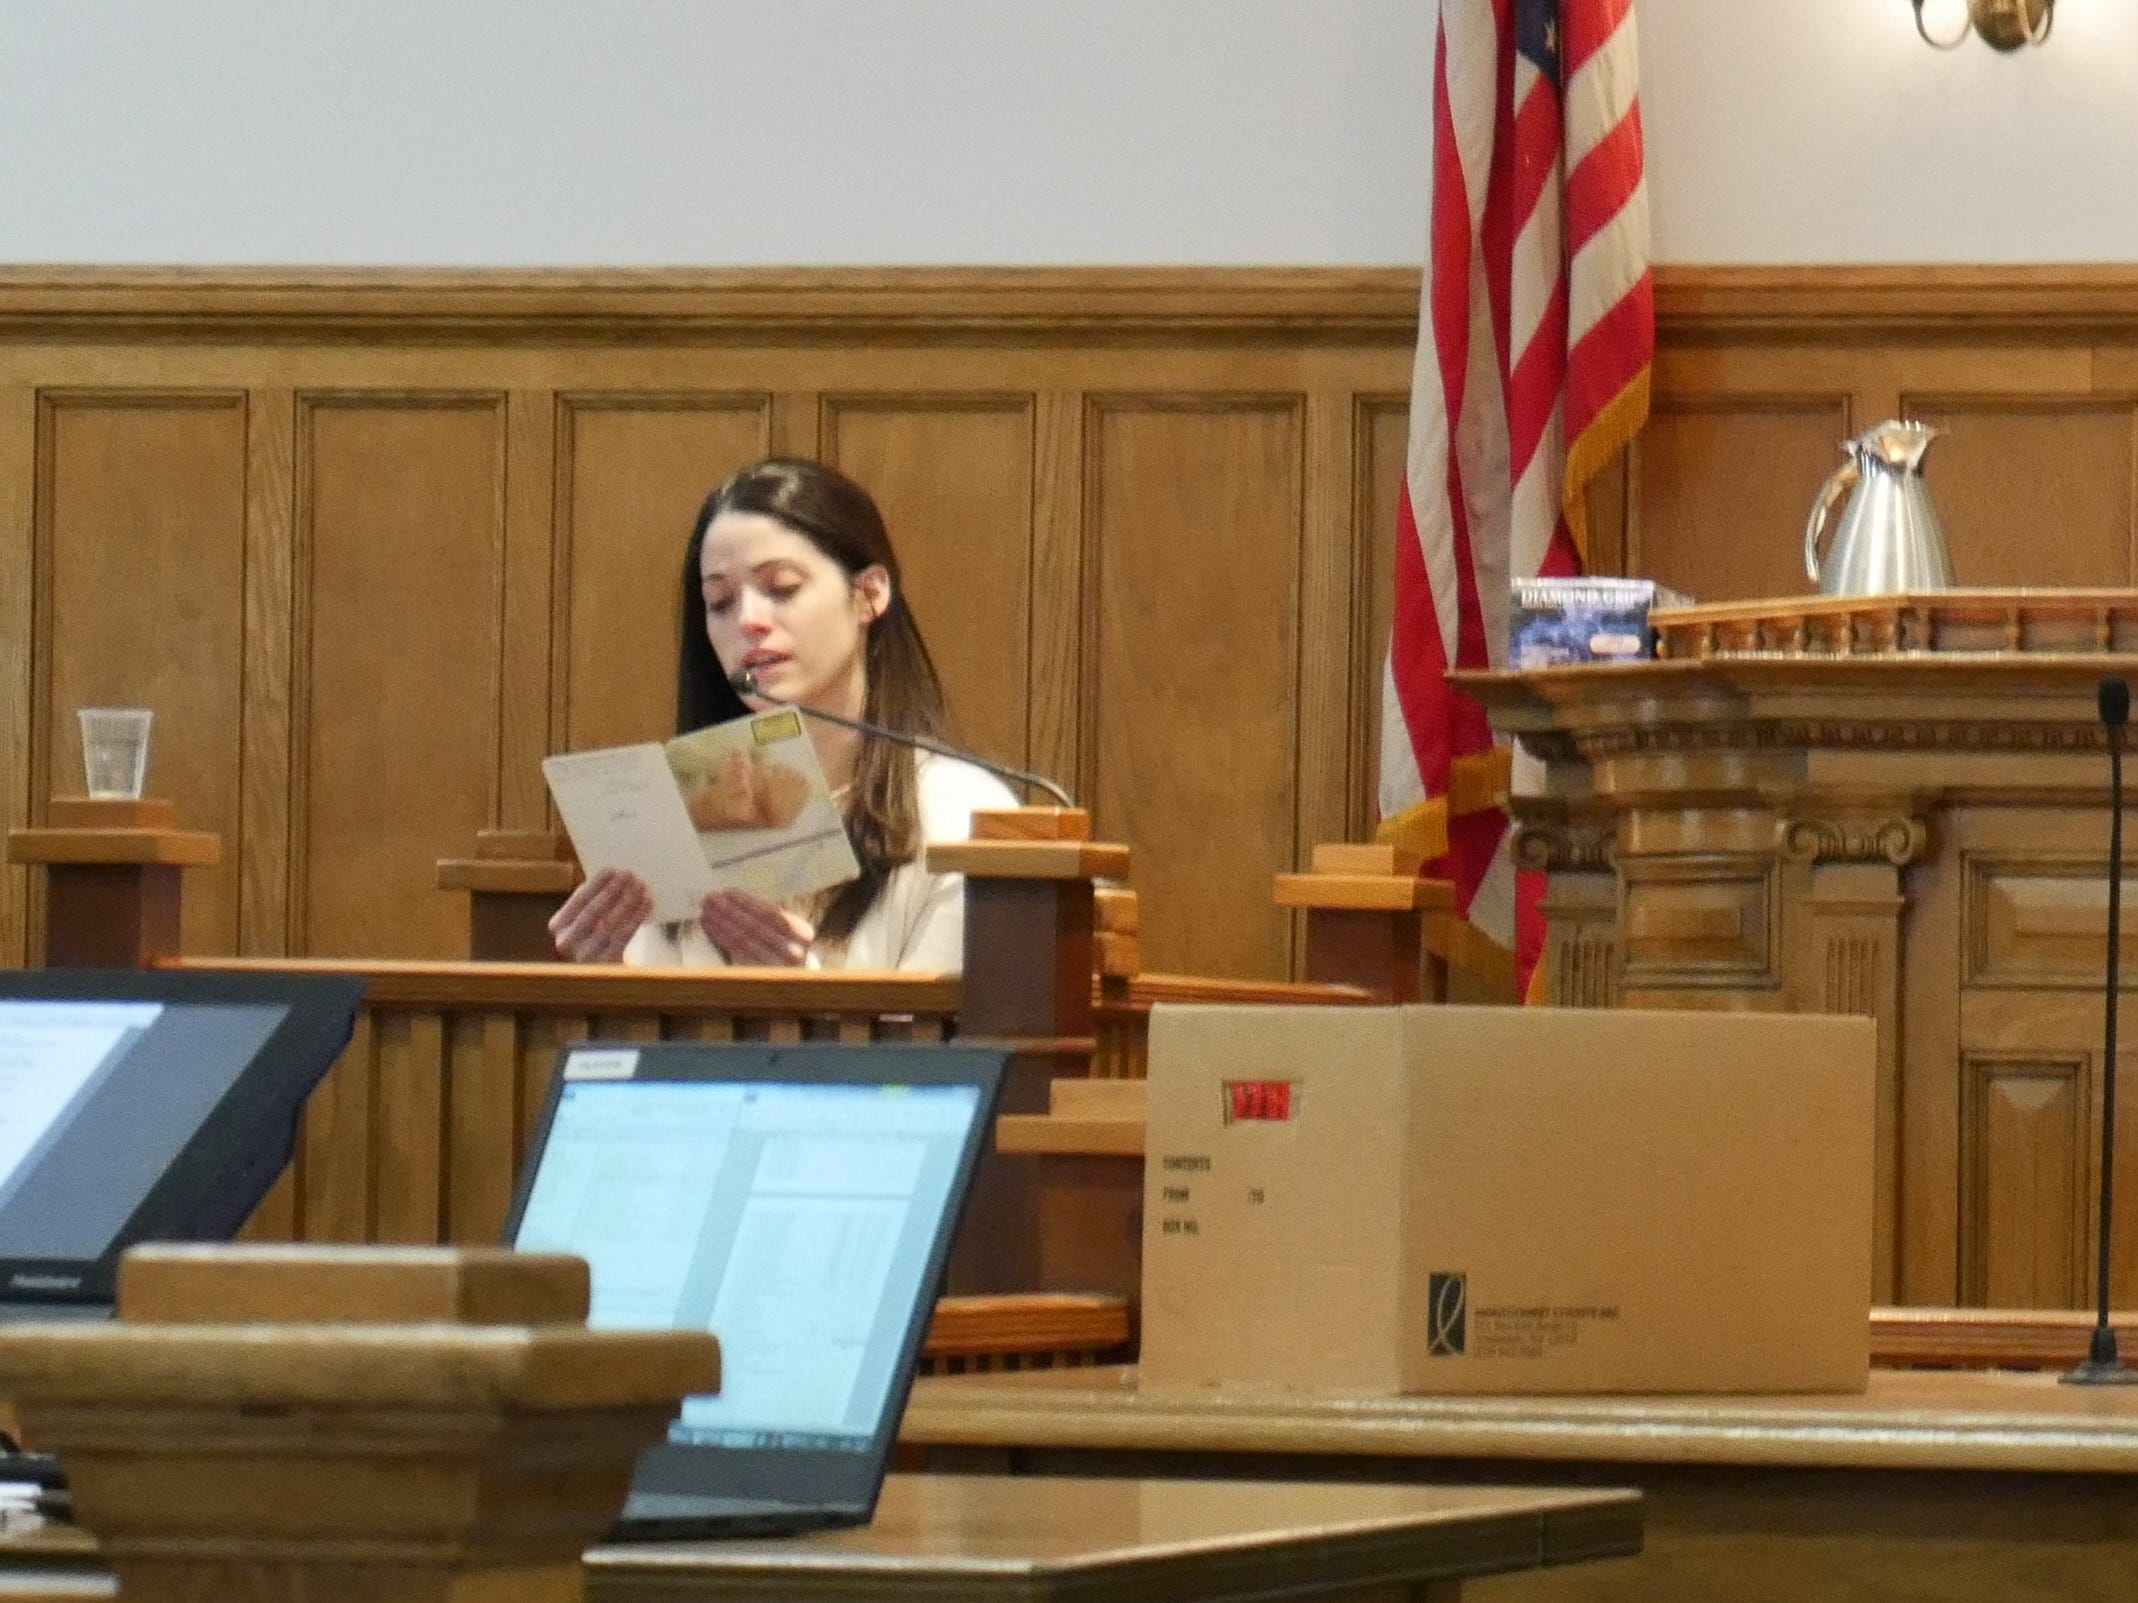 Nicole Addimando reads a card that she gave to Christopher Grover, in which she shared reasons she thought he would be a good dad, during her testimony in Dutchess County Court on March 26, 2019, at the request of prosecutors.